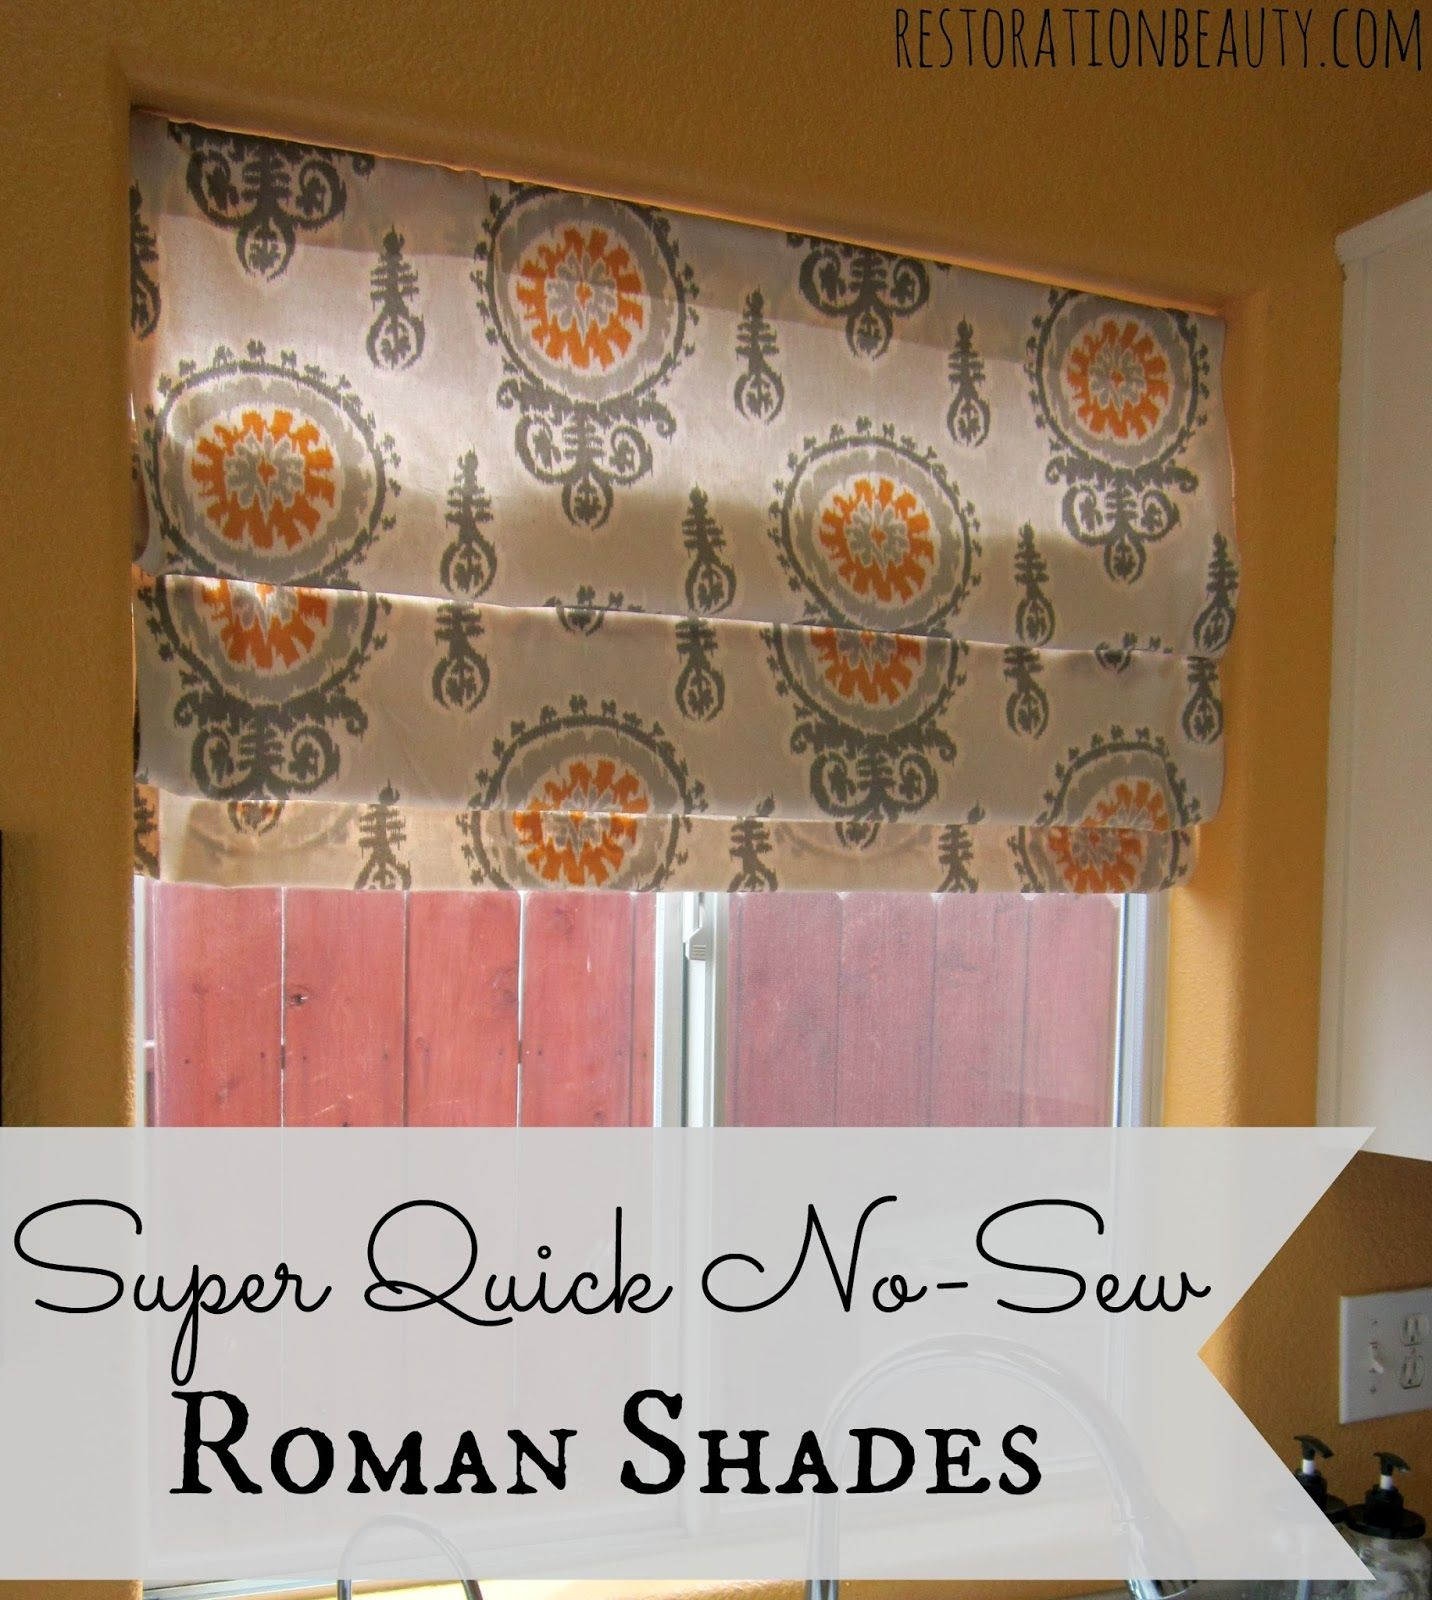 Super Quick No-Sew Roman Shades